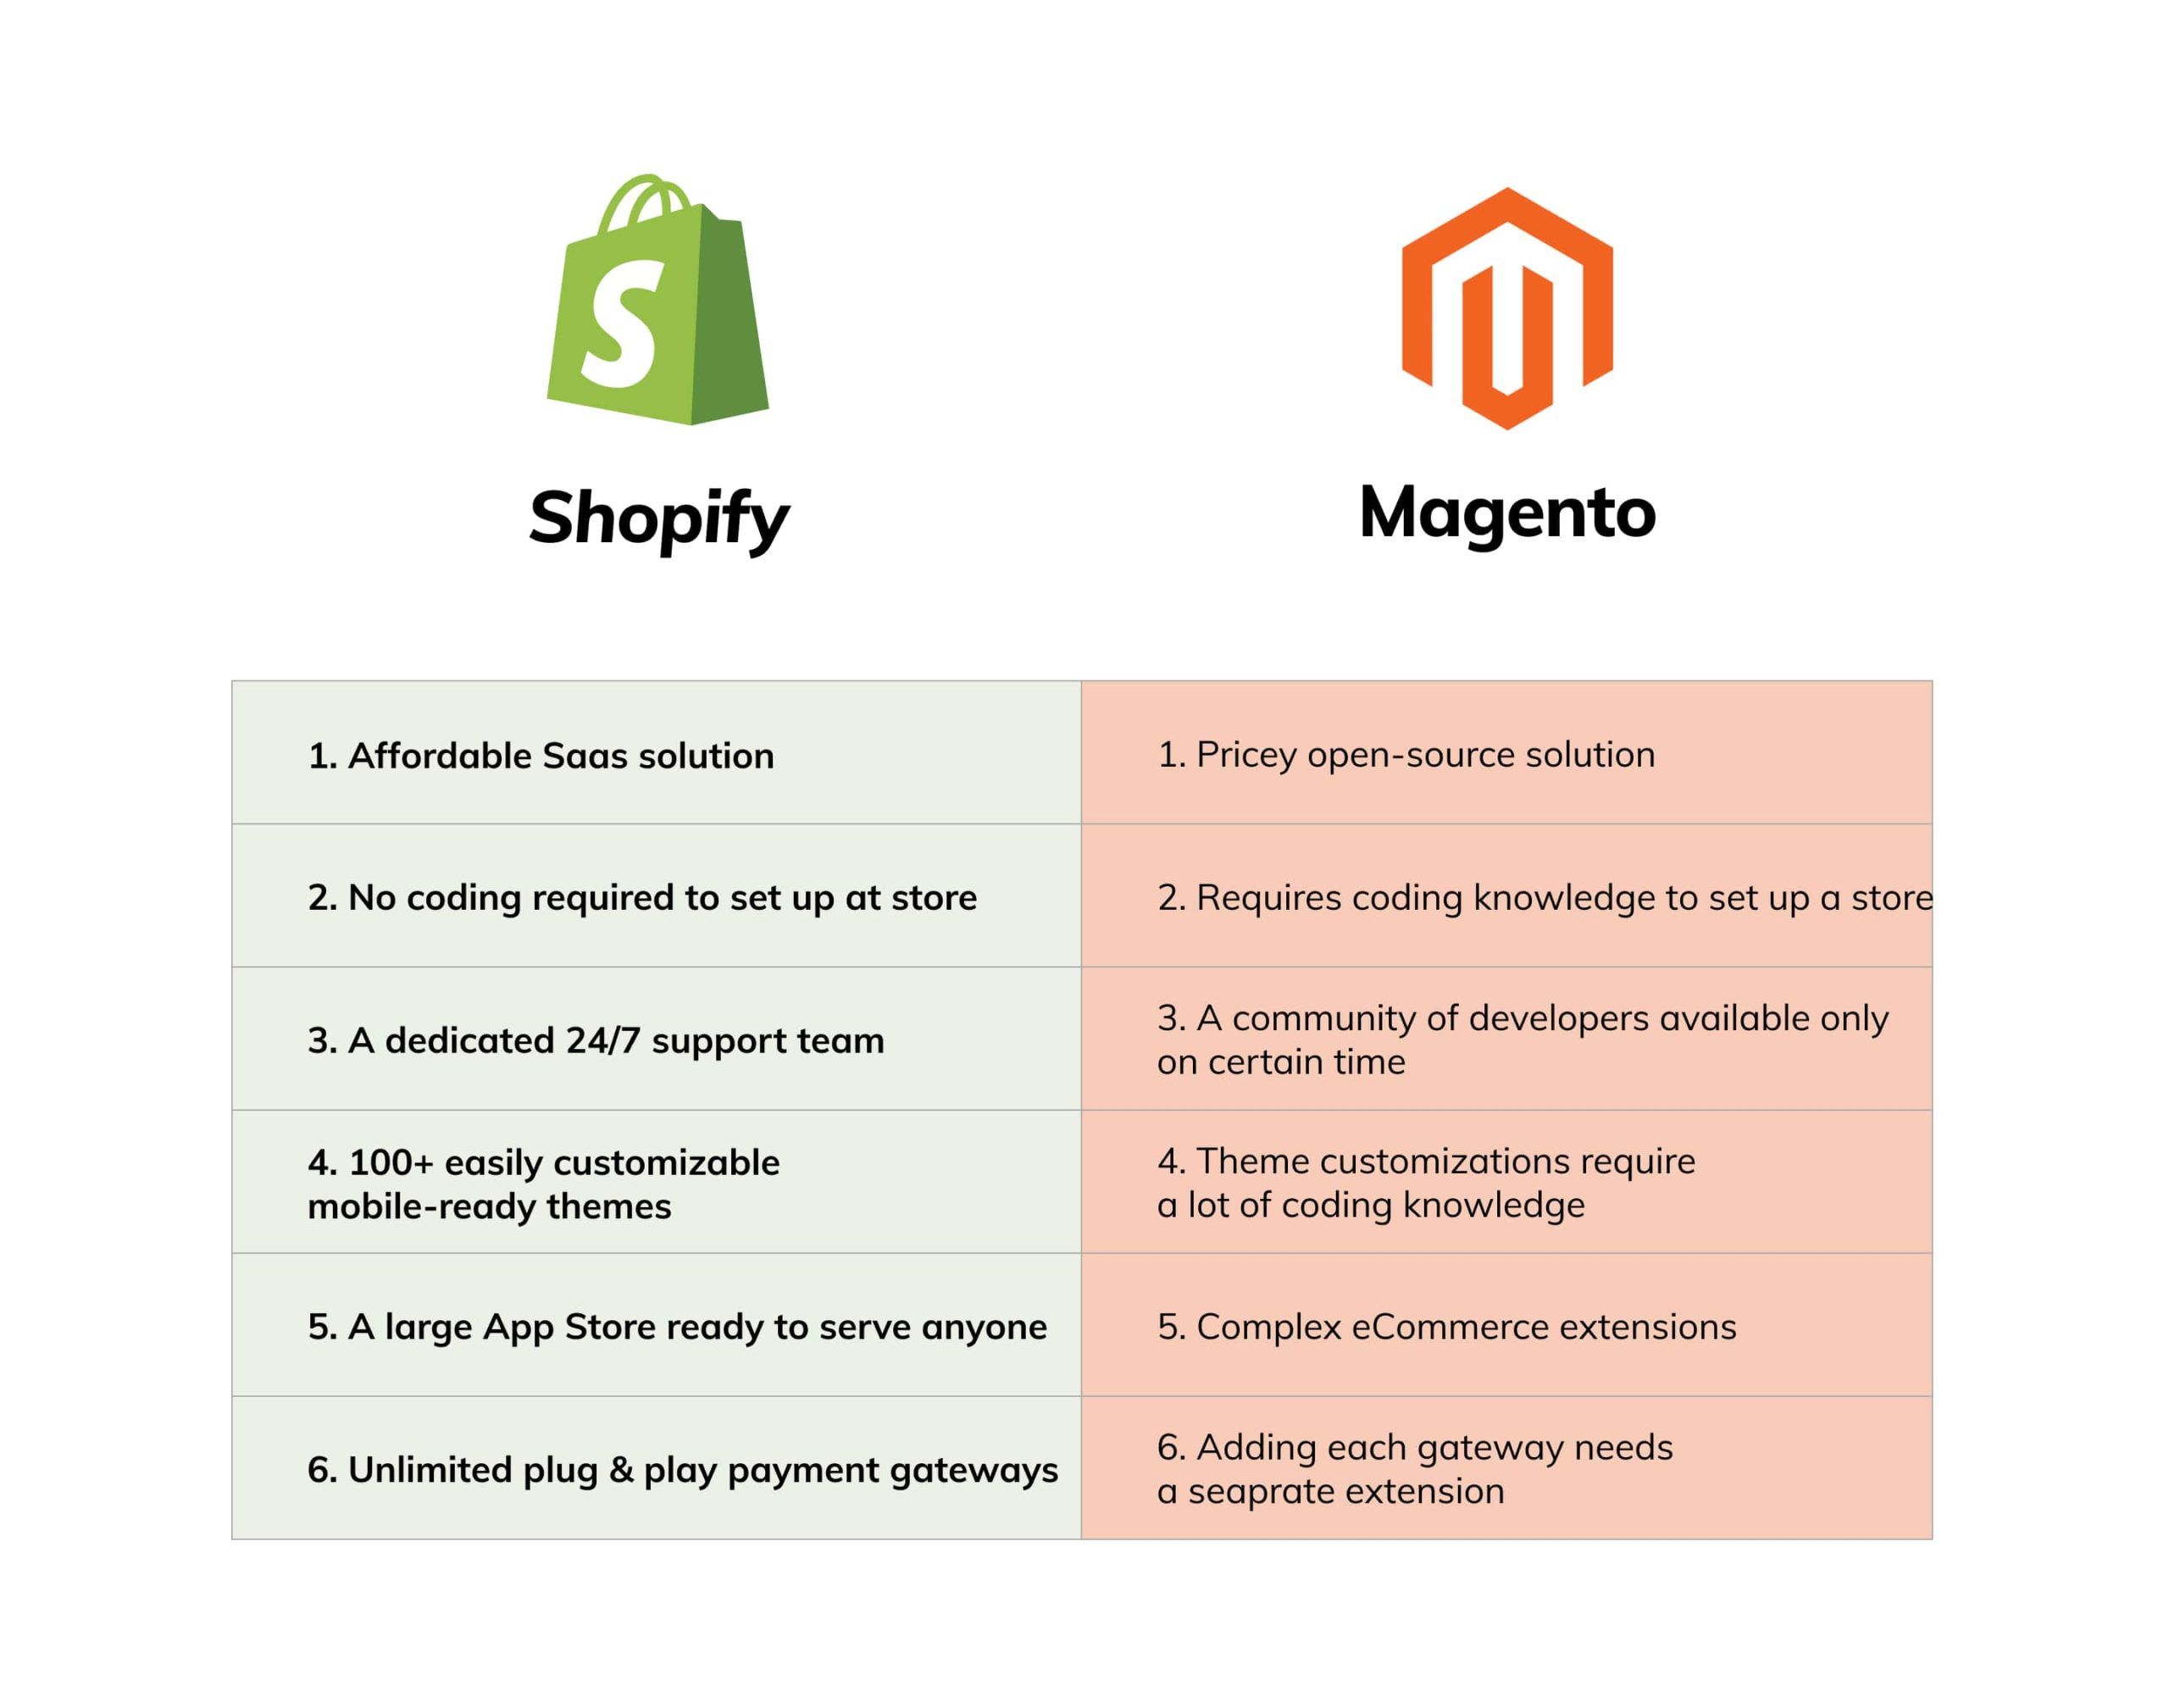 Magento vs Shopify Coding